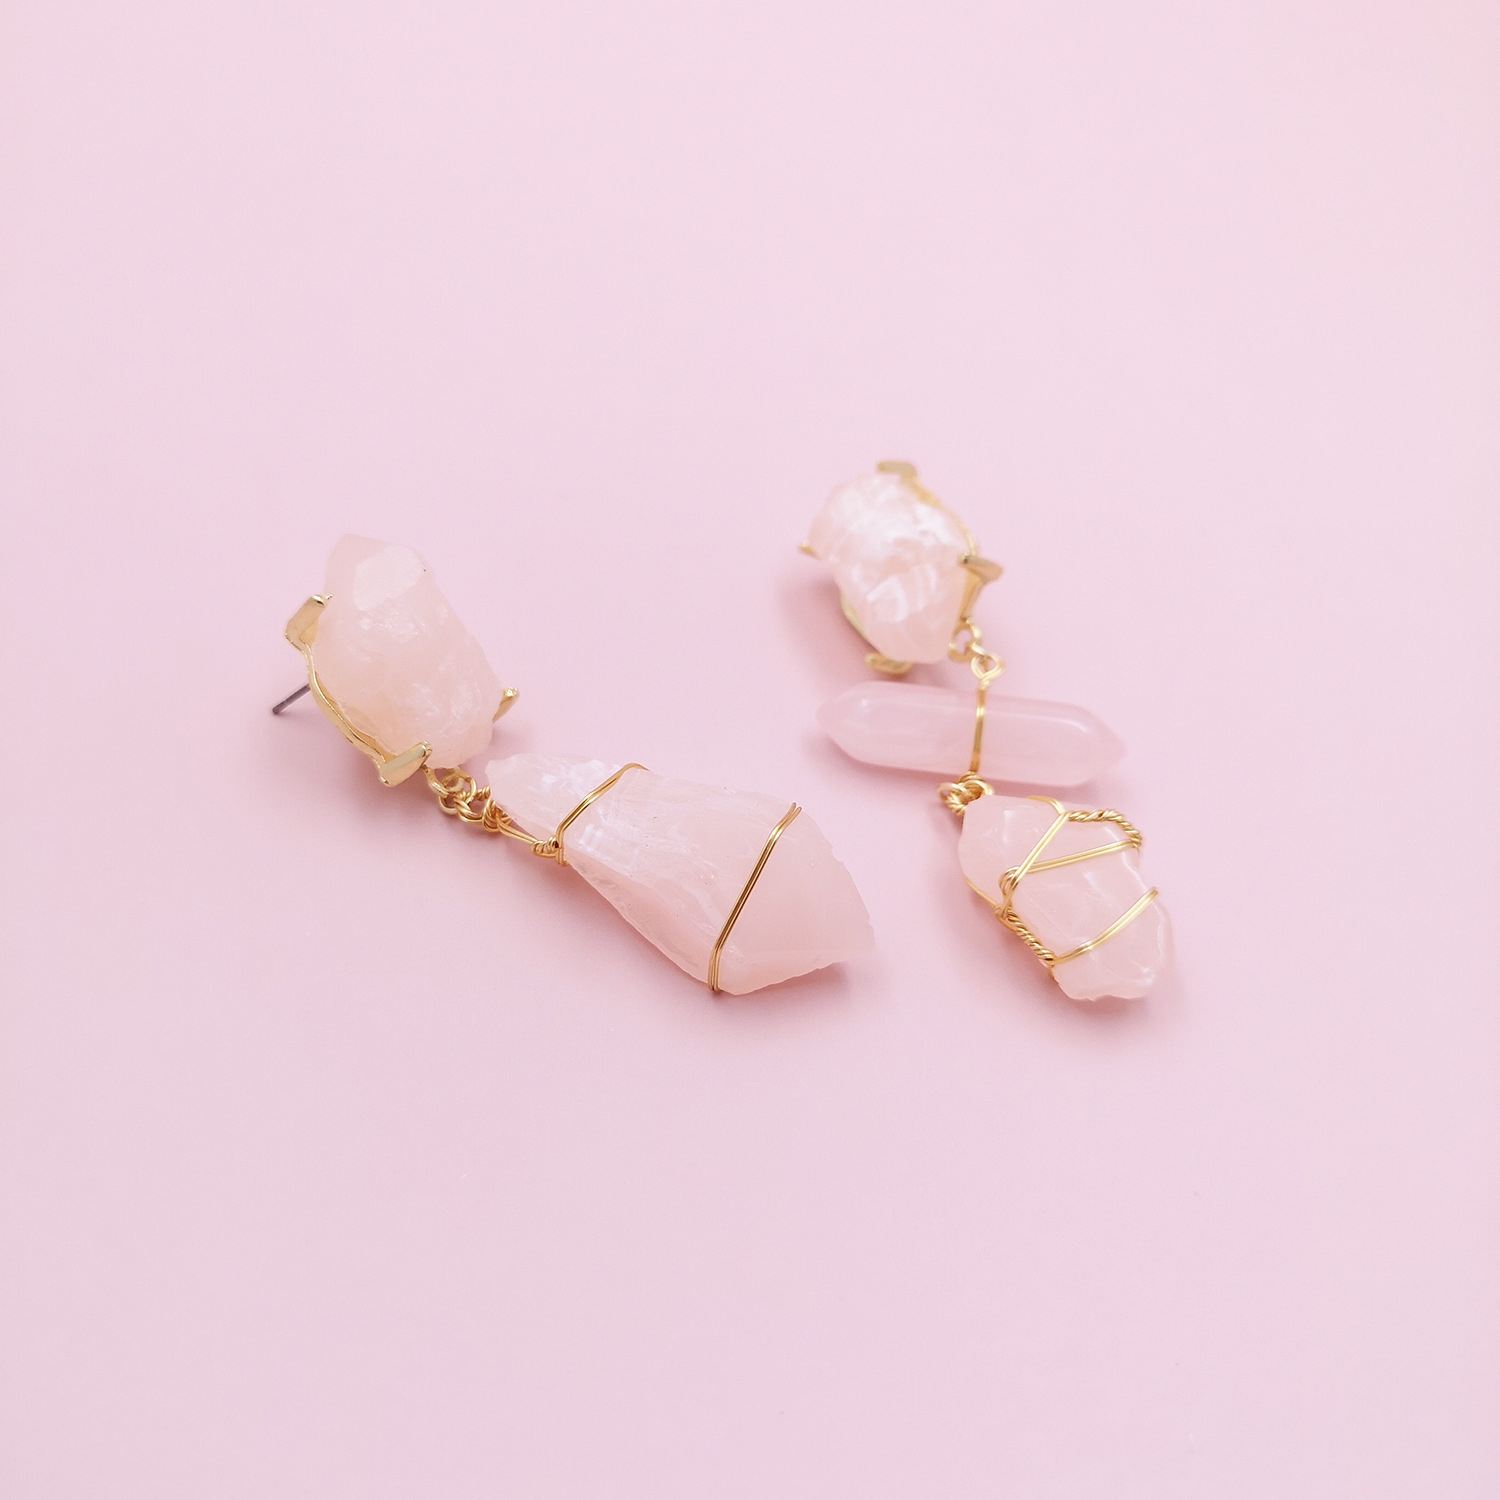 Fashion earrings asymmetric geometric acrylic resin stud earrings nihaojewelry wholesale NHJJ214913